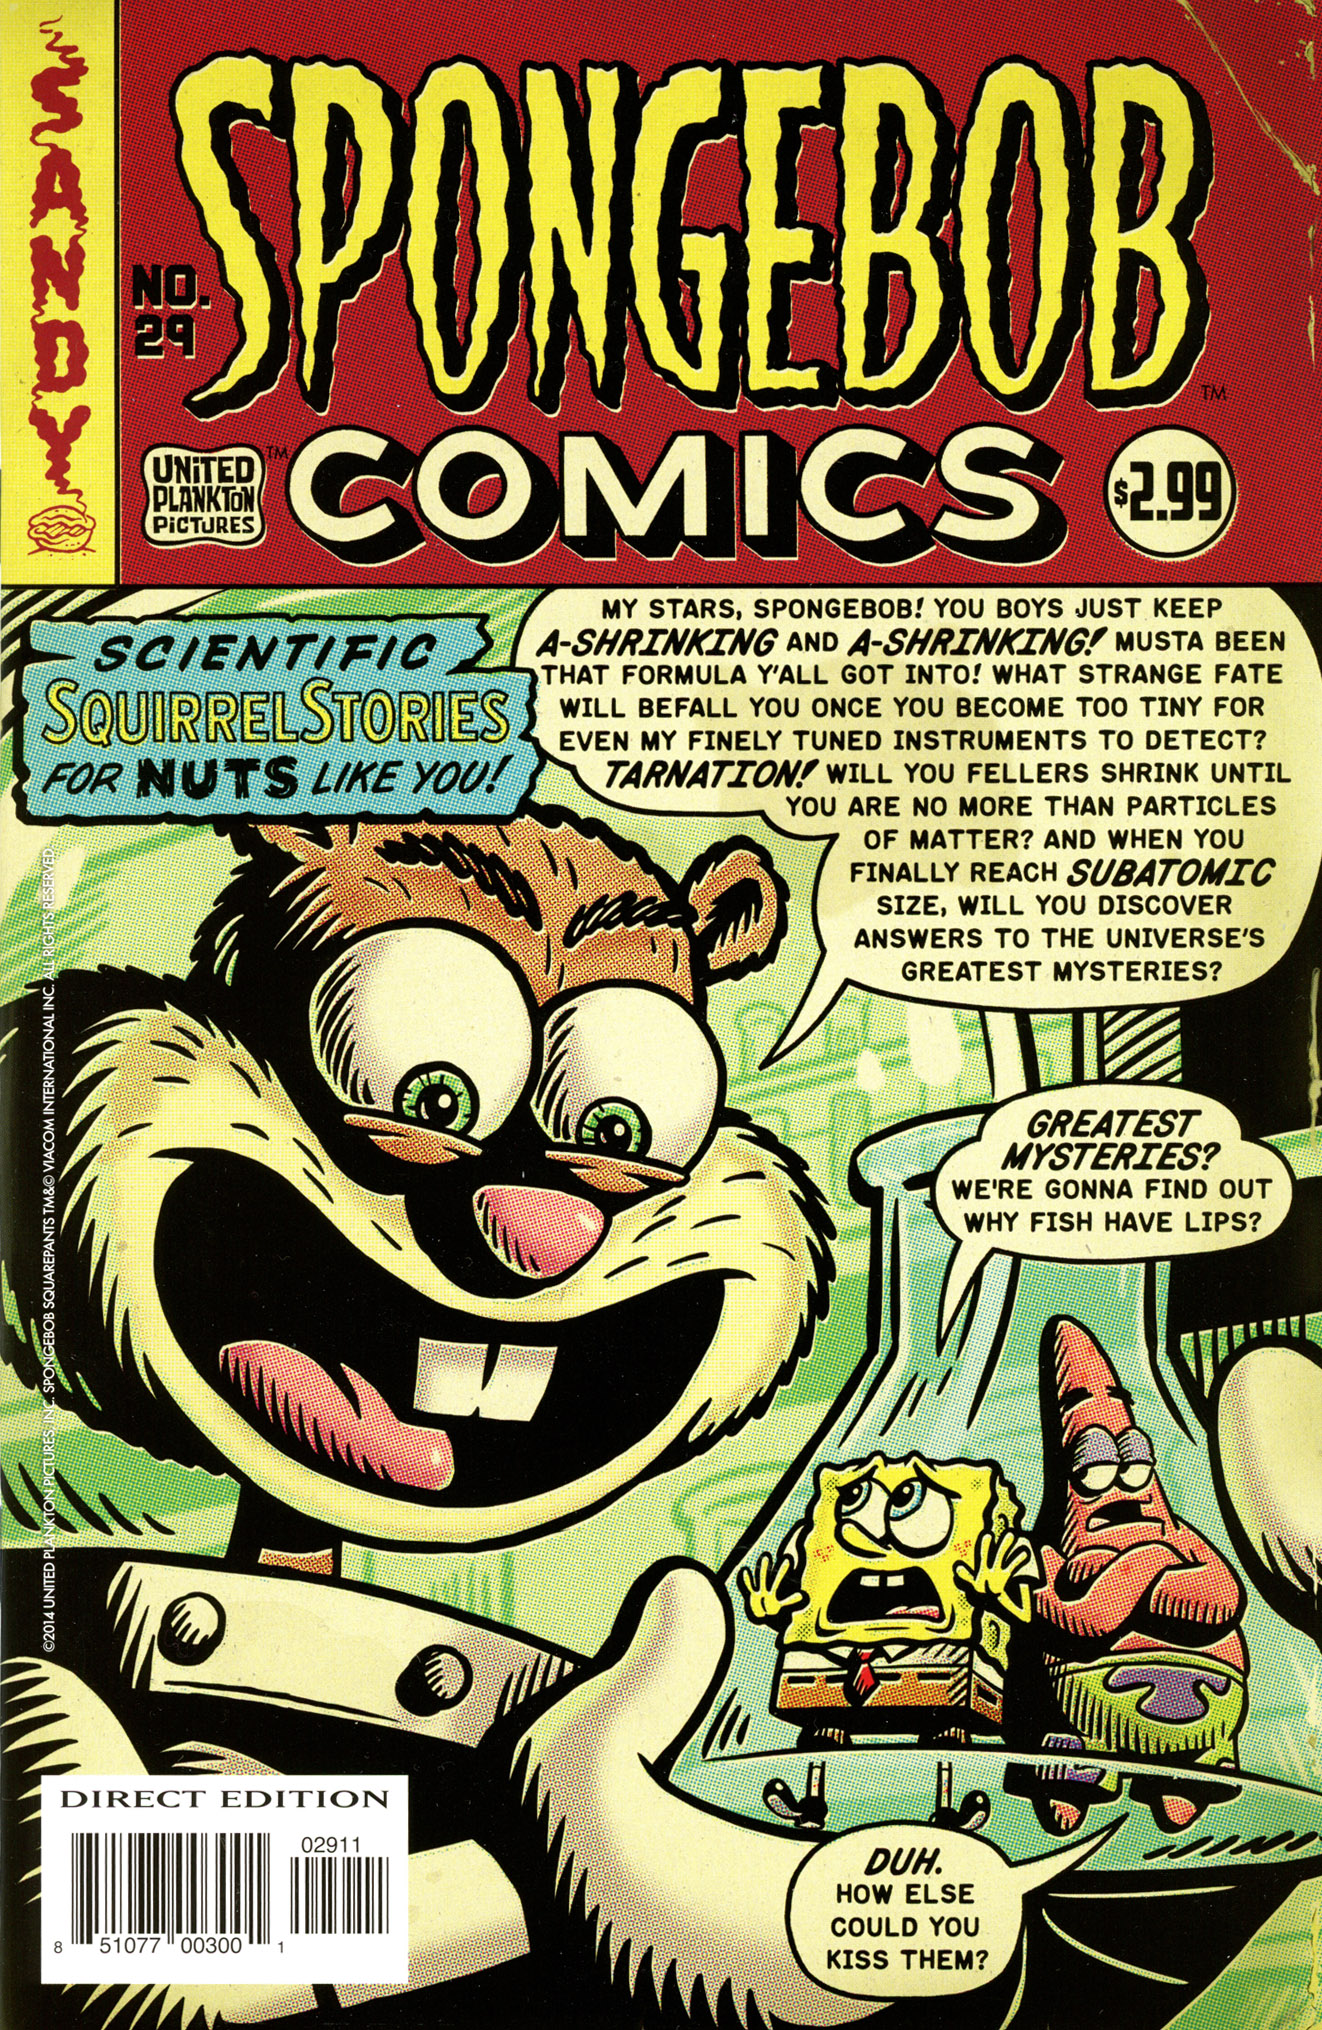 Scientific Stories for Nuts Like You!